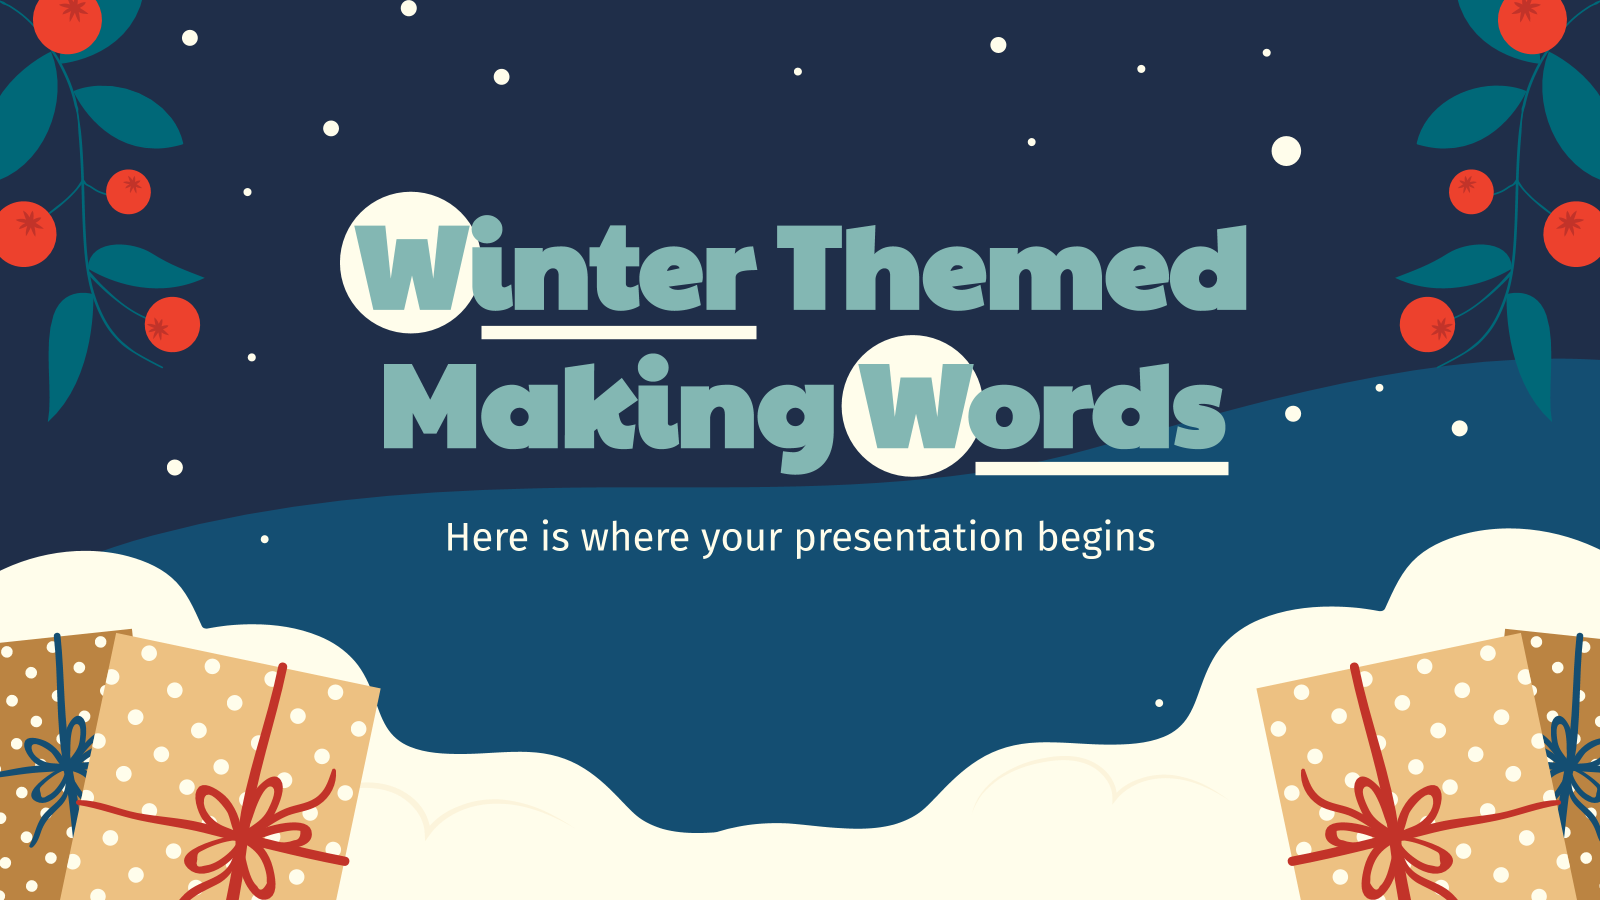 Winter Themed Making Words presentation template